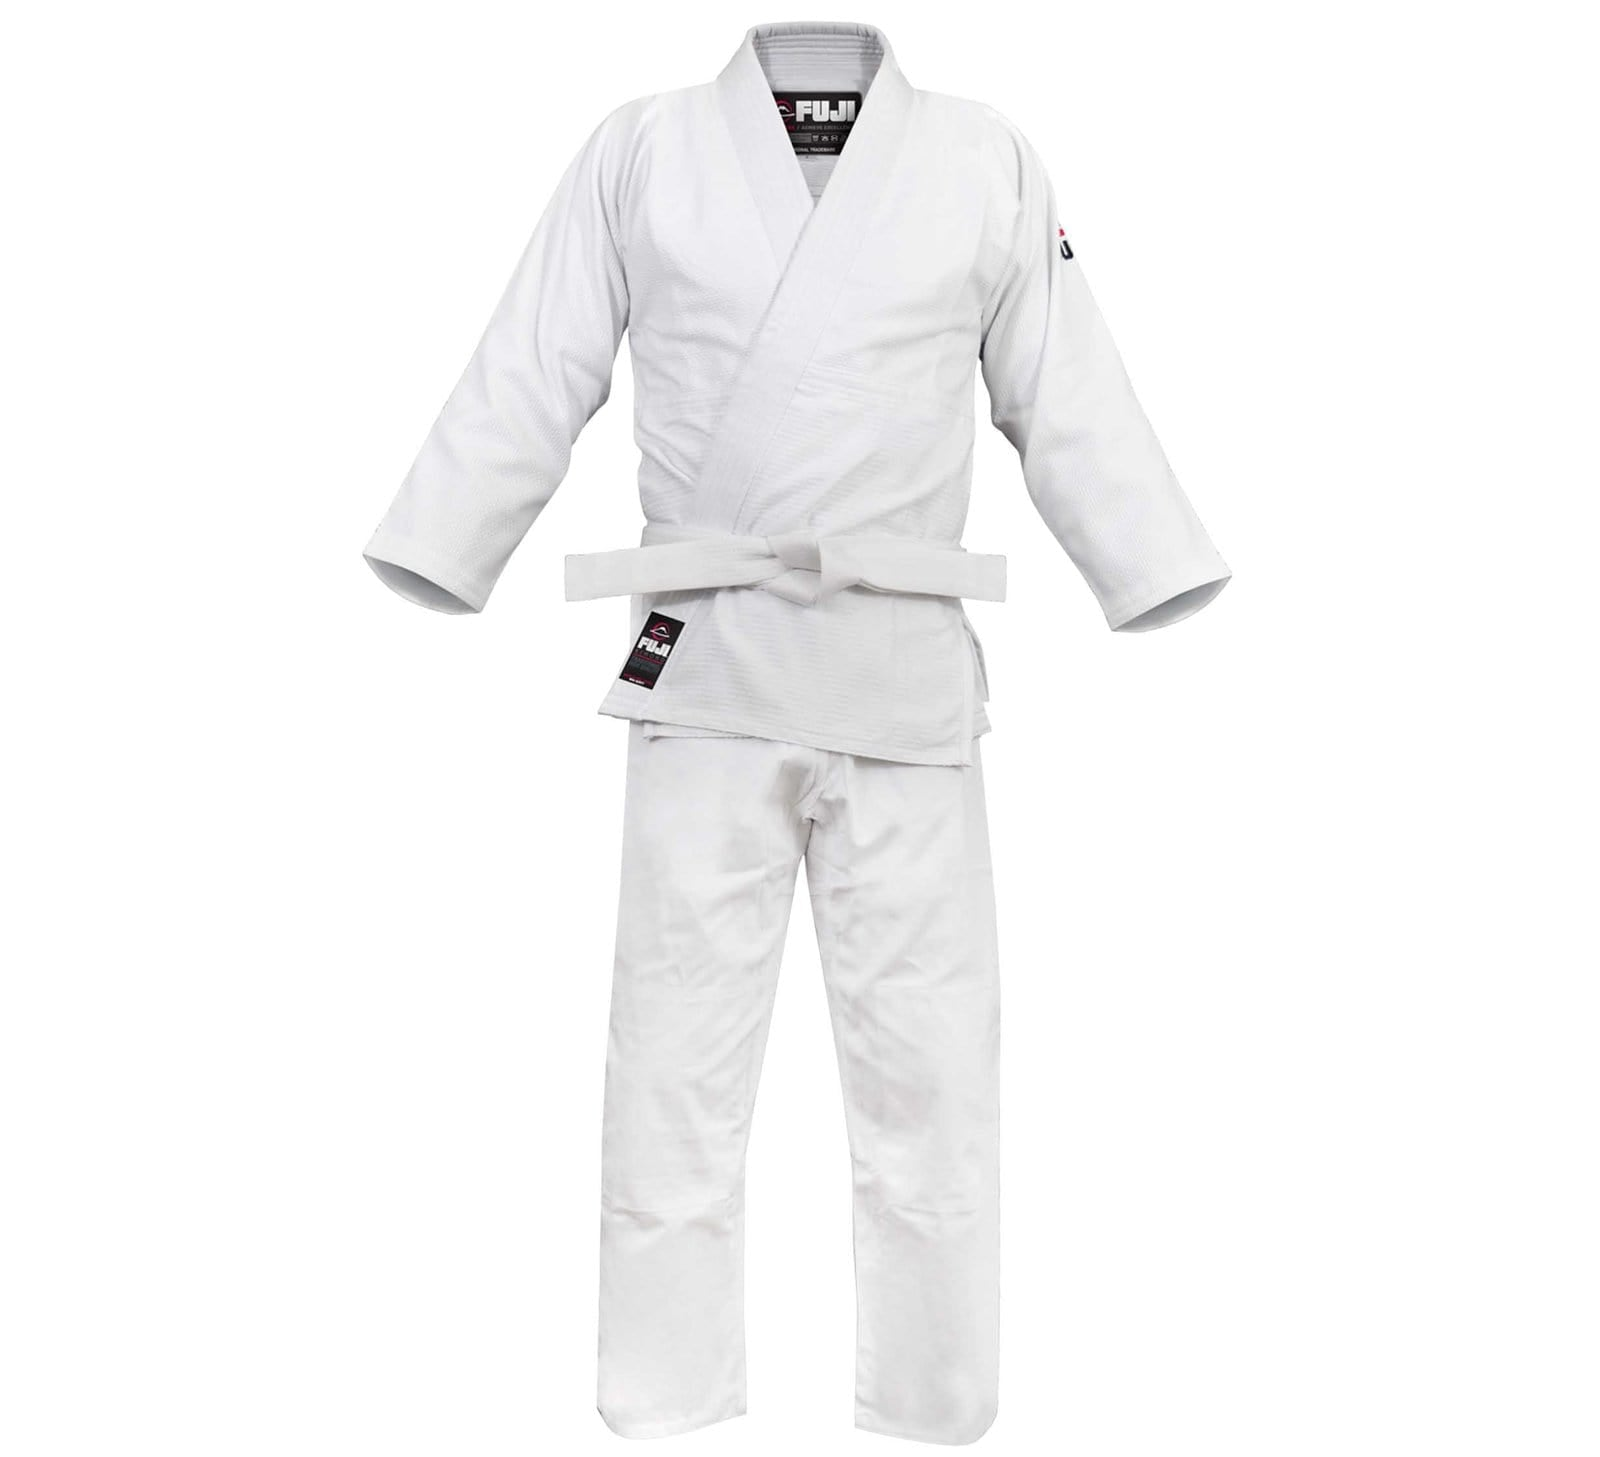 Fuji All Purpose Single Weave Judo Gi - White FUJI-FW - BlackBeltShop